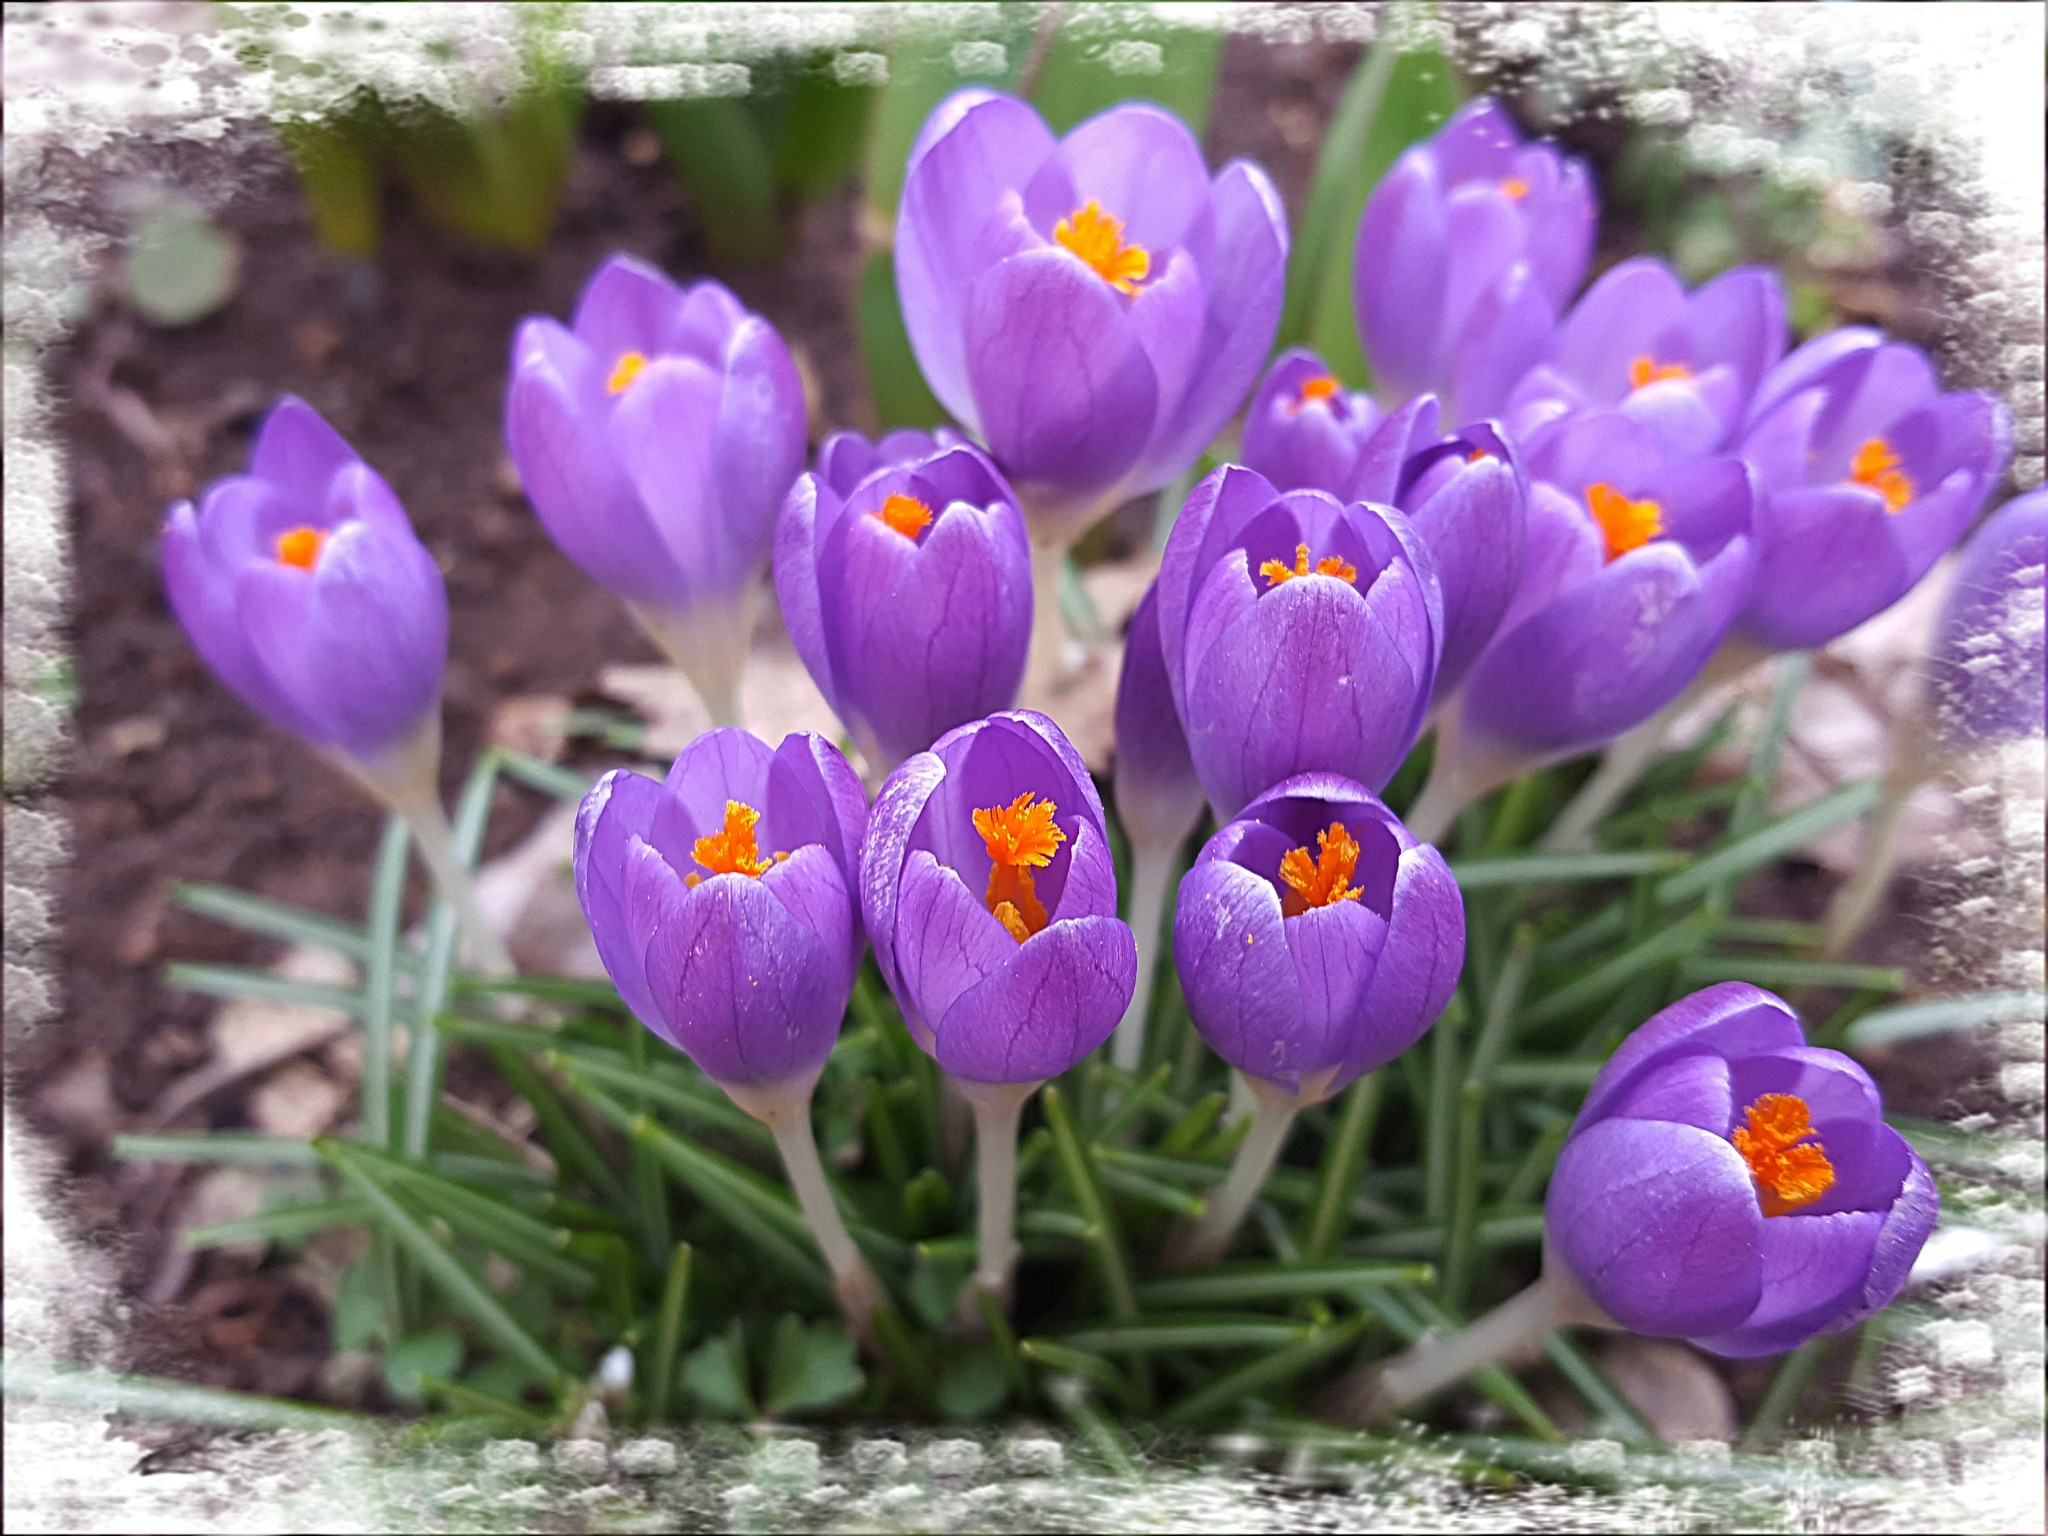 Crocus by zvnktomasevic